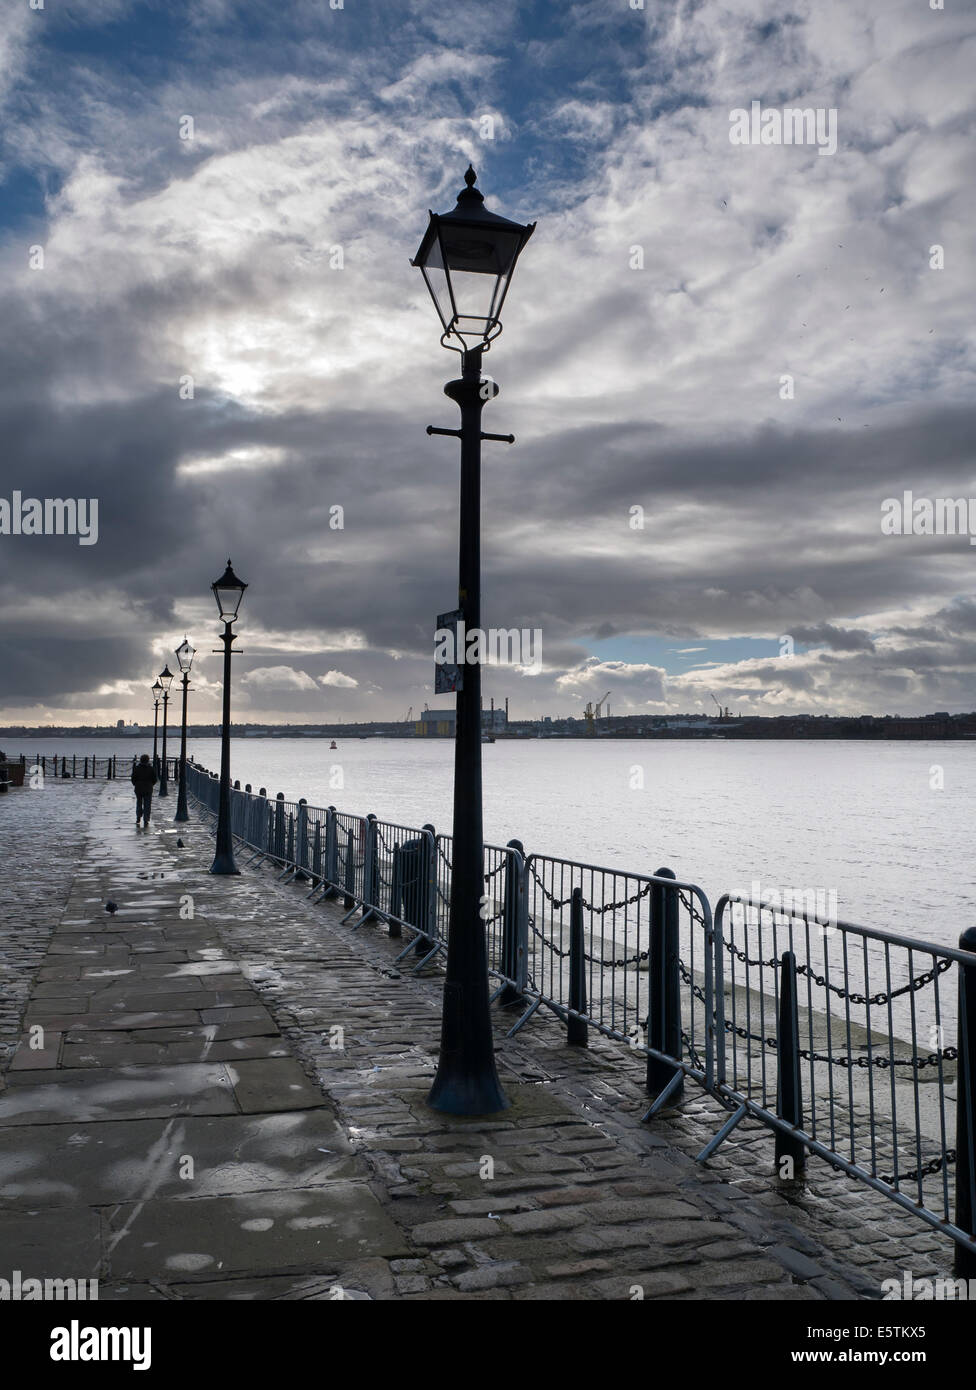 The Waterfront to the River Mersey, Liverpool - Stock Image